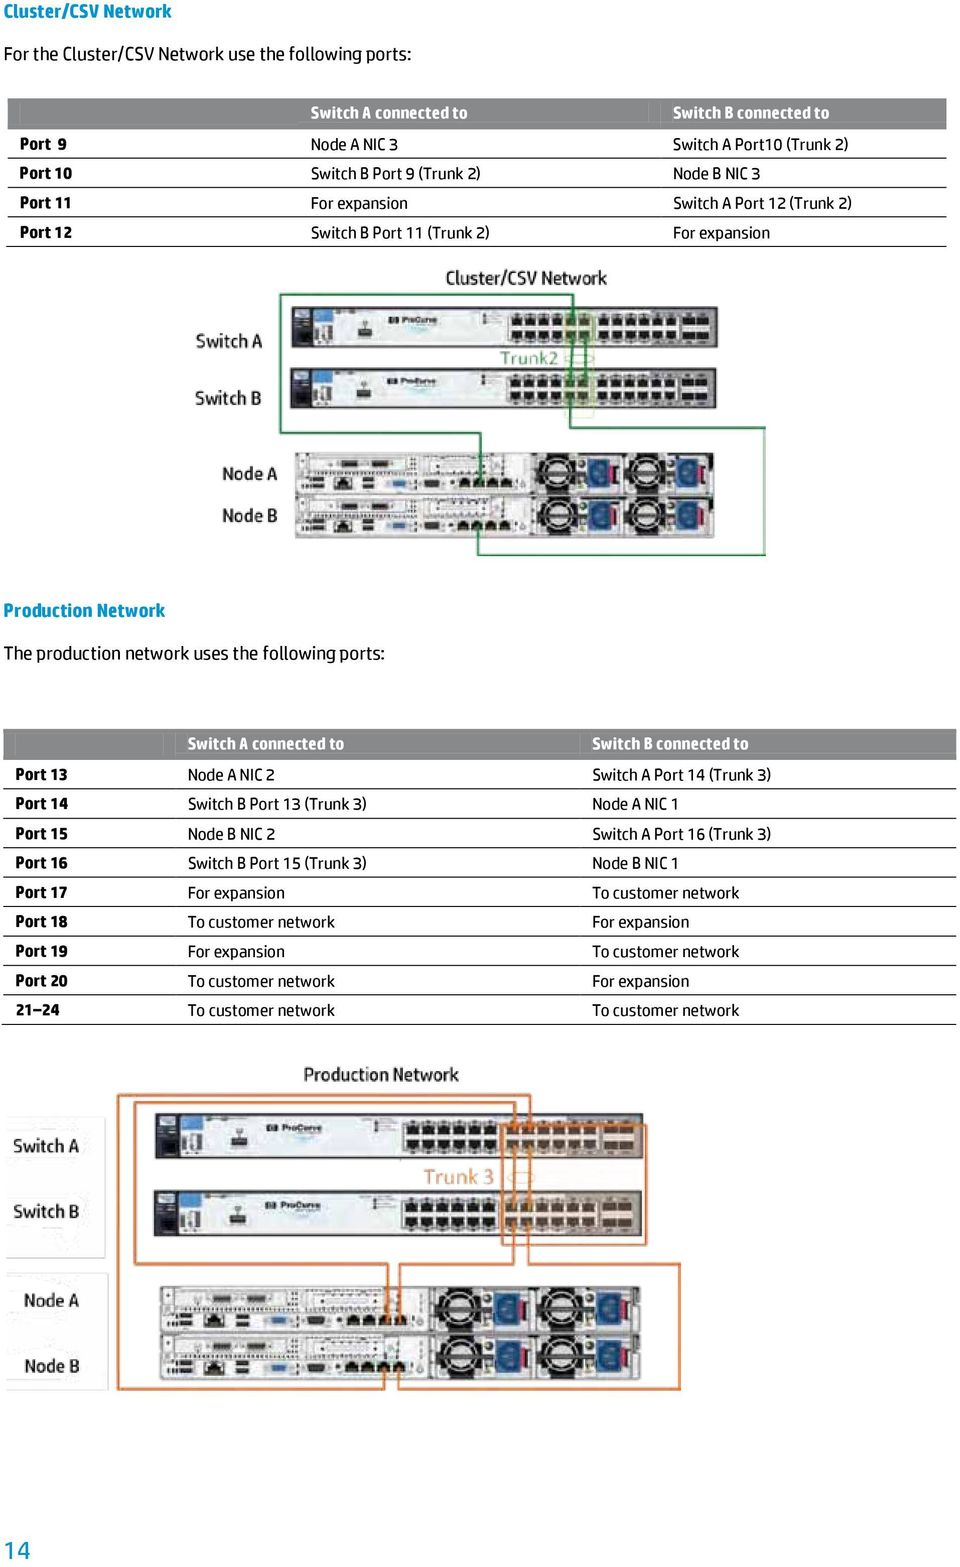 to Switch B connected to Port 13 Node A NIC 2 Switch A Port 14 (Trunk 3) Port 14 Switch B Port 13 (Trunk 3) Node A NIC 1 Port 15 Node B NIC 2 Switch A Port 16 (Trunk 3) Port 16 Switch B Port 15